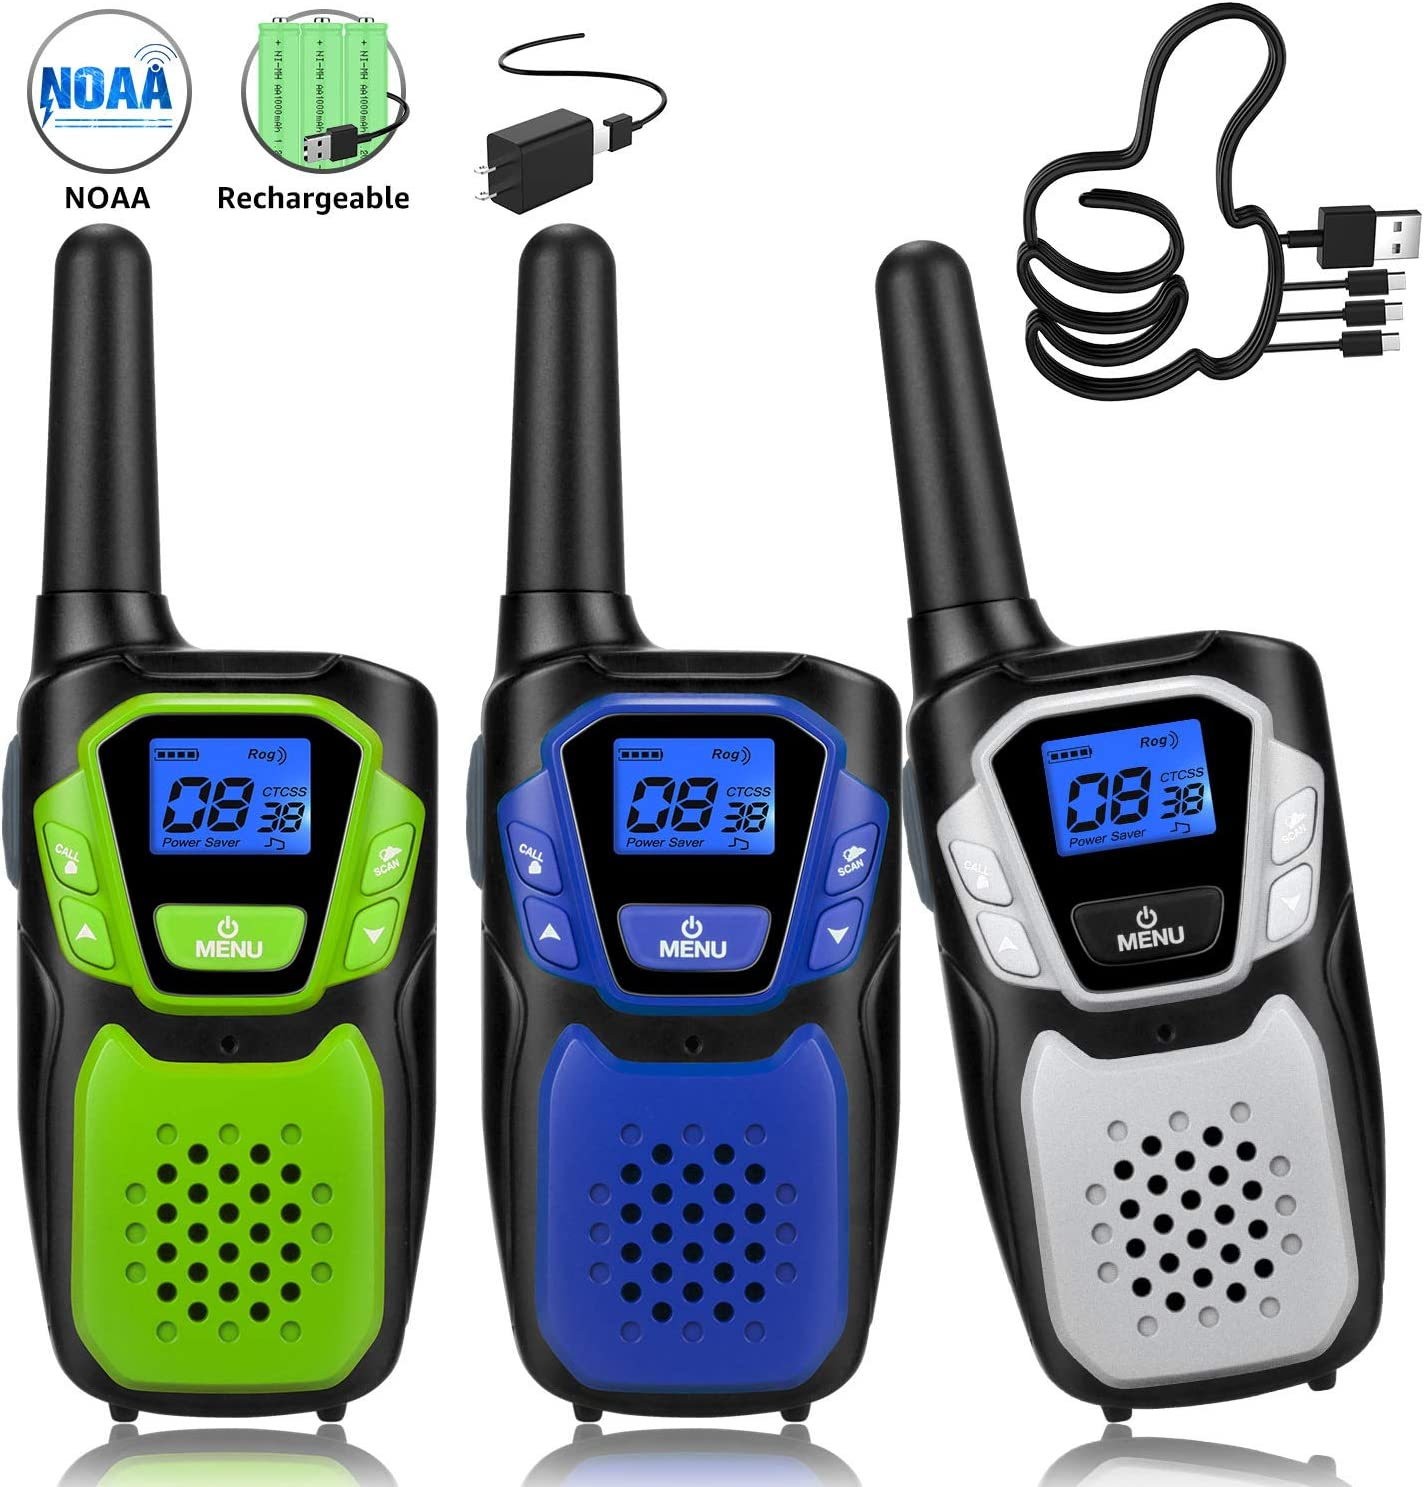 Walkie Talkies 3 Pack Rechargeable, Easy to Use Long Range Walky Talky Handheld Two Way Radio with NOAA for Hiking Camping (1Blue & 1Green & 1Silver with Relugar Micro-USB Charger/Batteries)